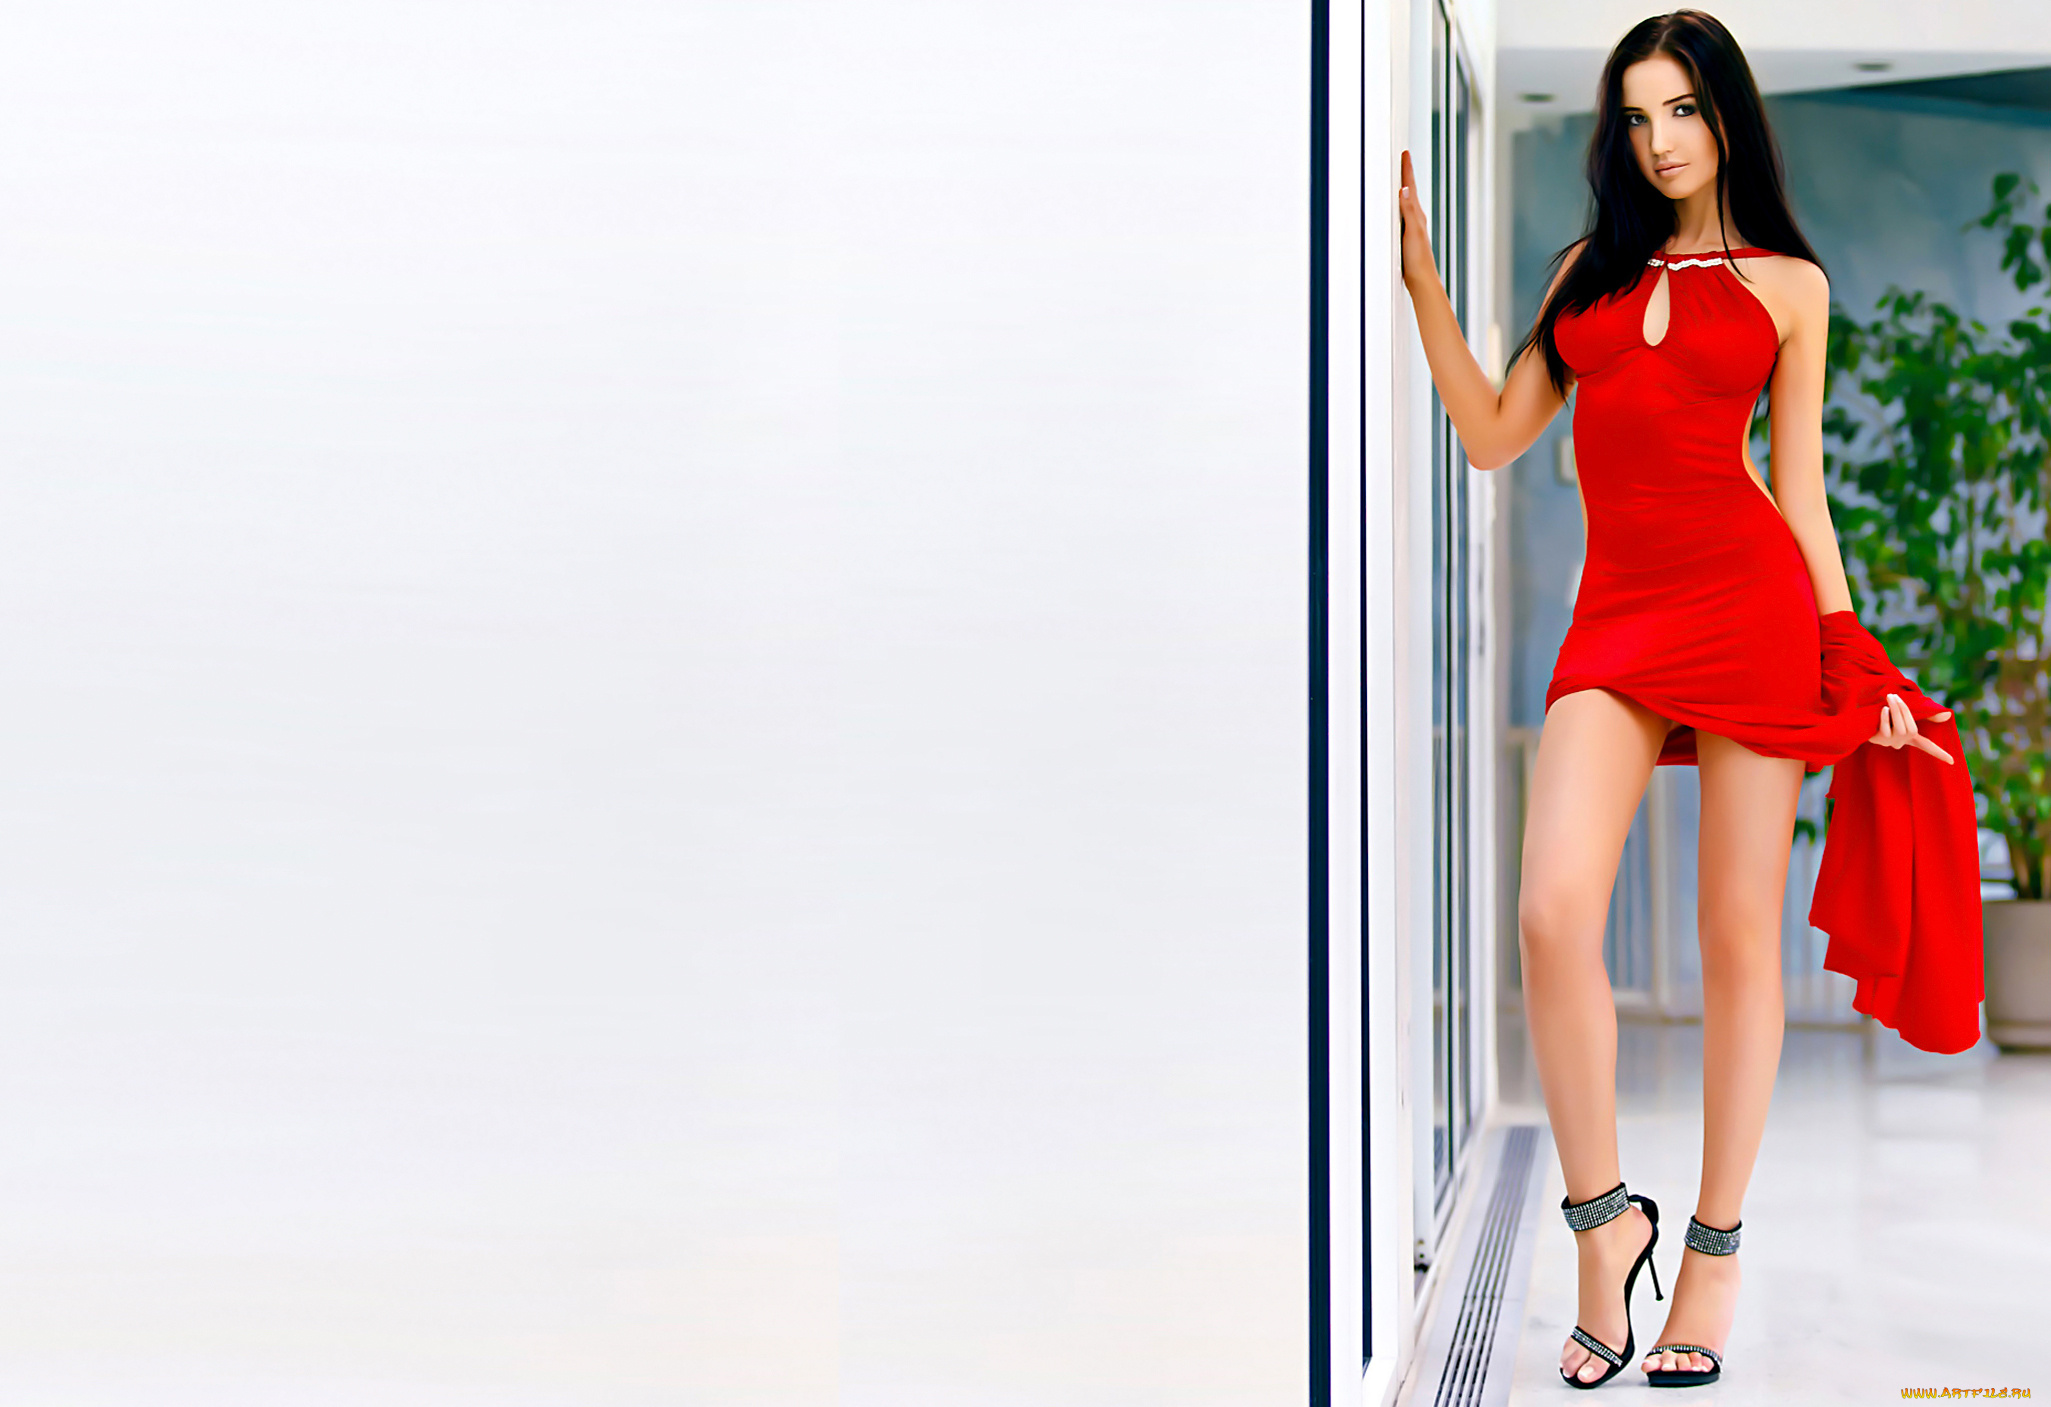 anal penetration for the appetitive brunette in the red dress  300049